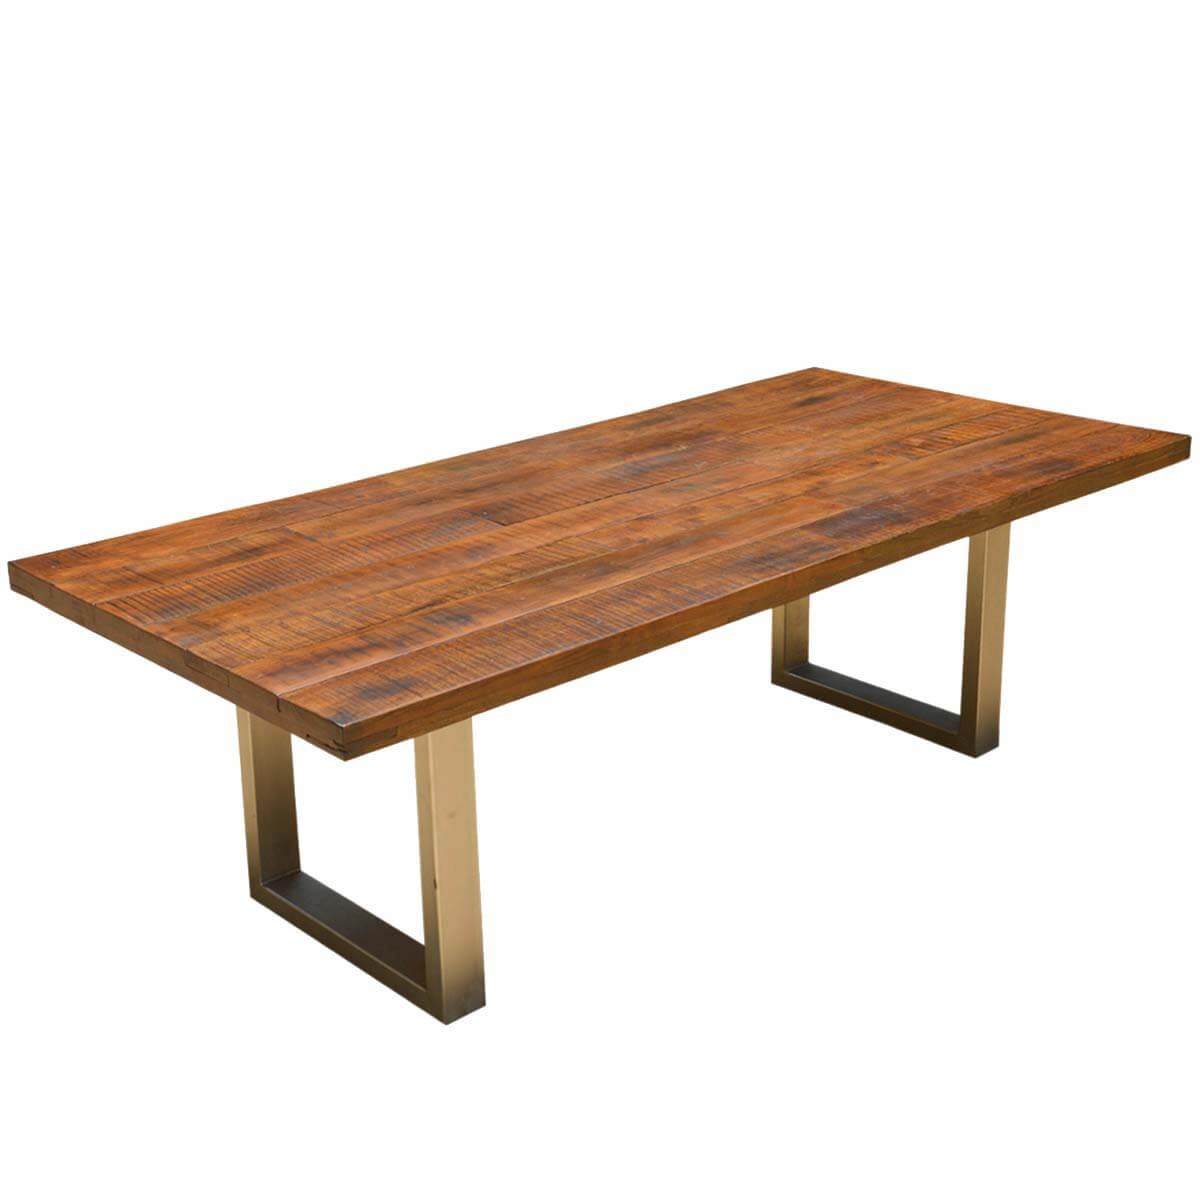 Rustic solid acacia wood dining table hover to zoom